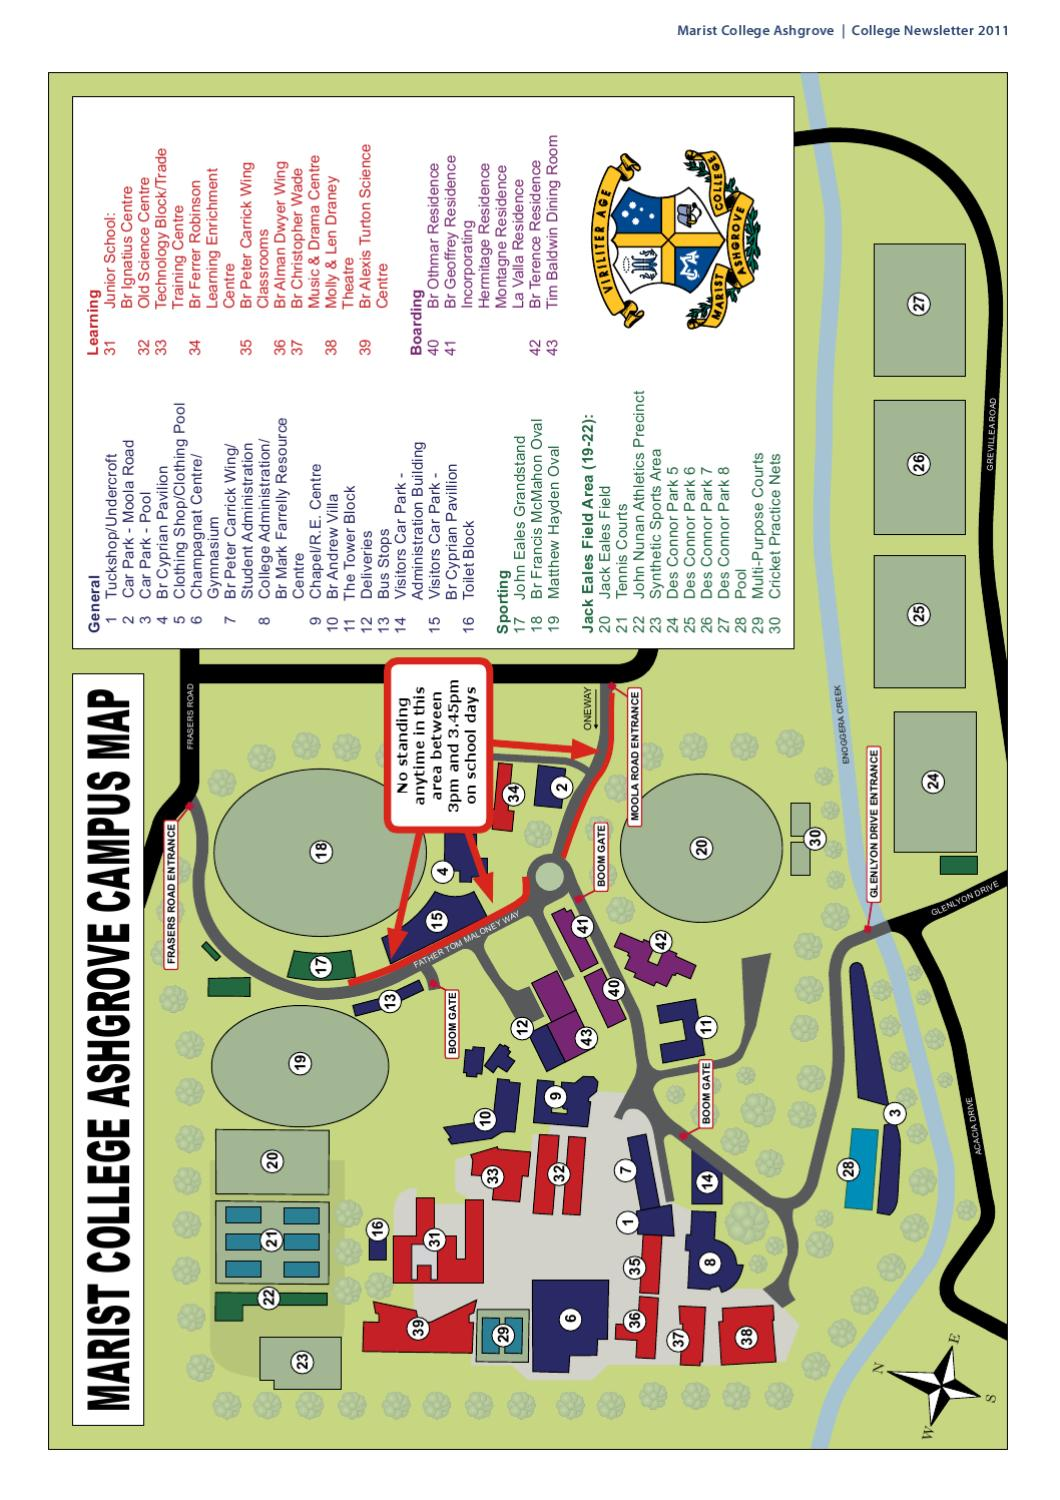 marist college campus map Marist College Ashgrove Newsletter By Marist College Ashgrove Issuu marist college campus map